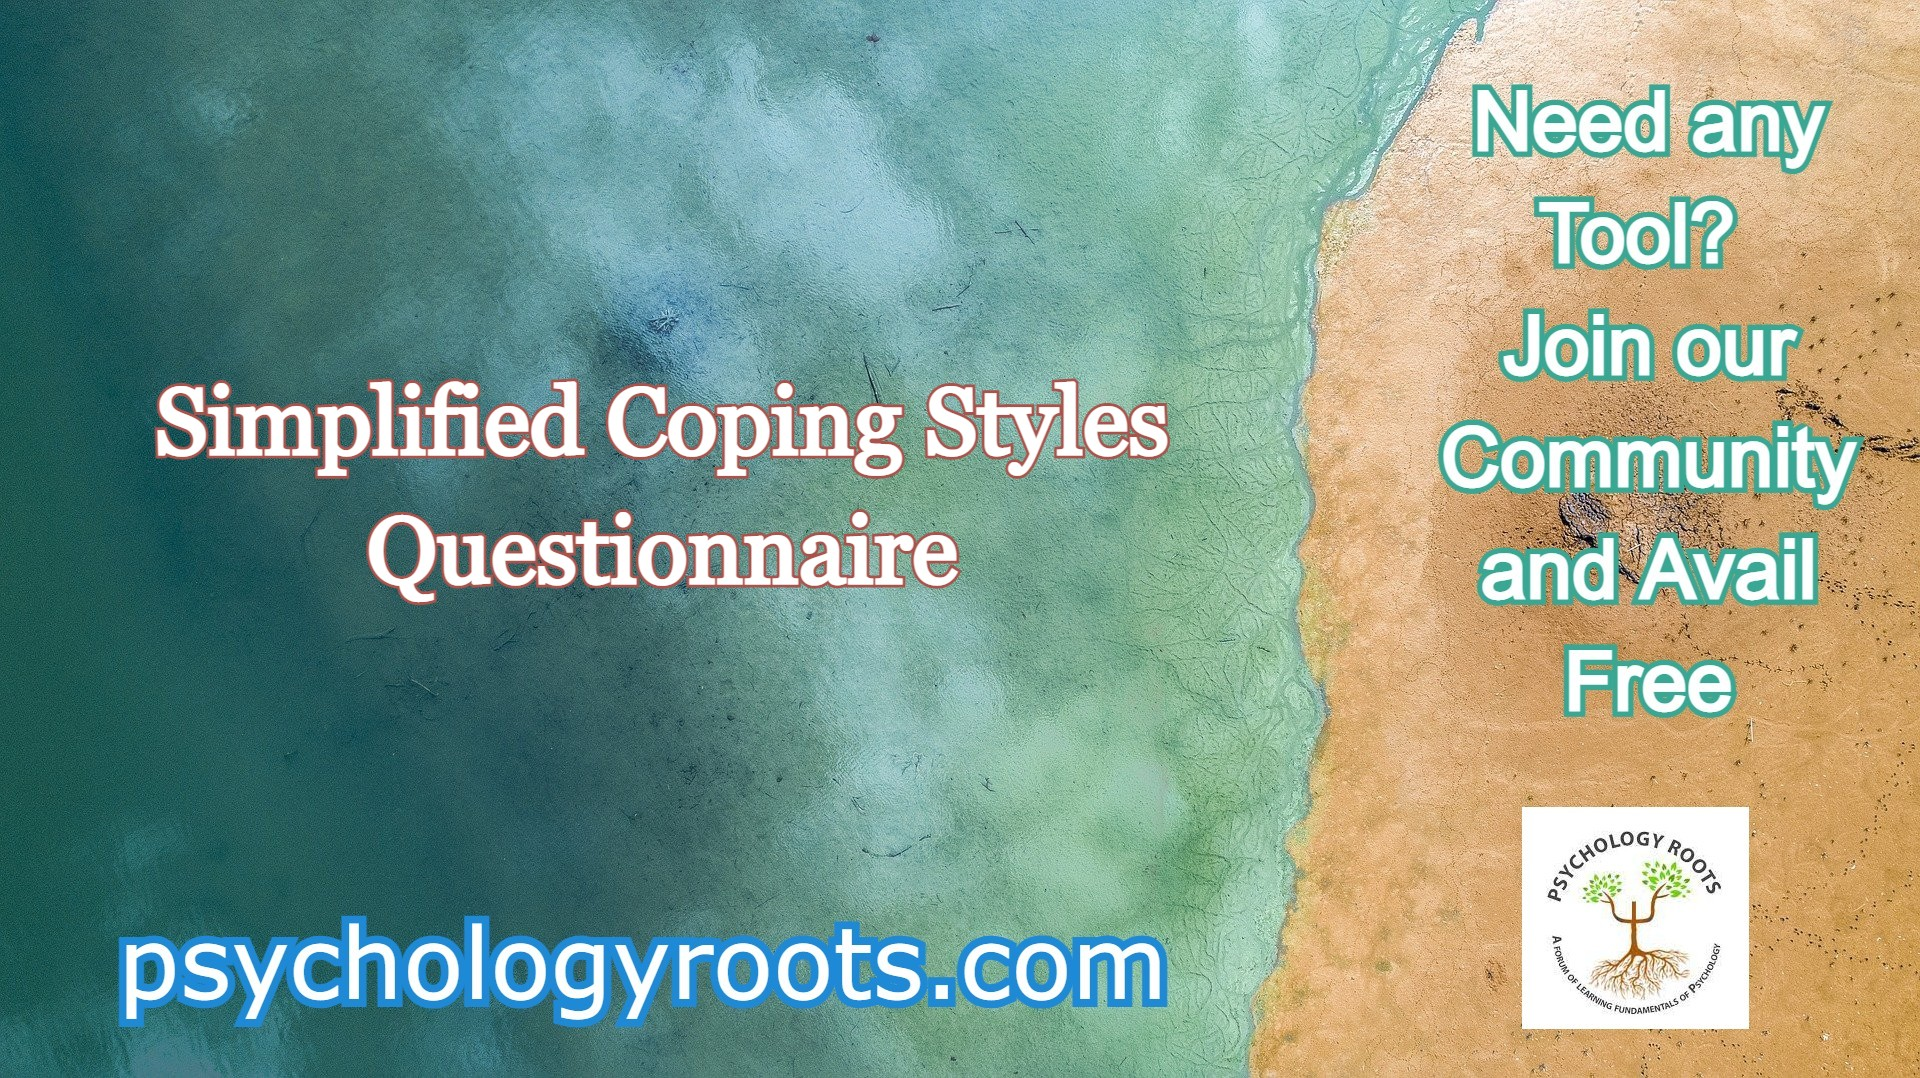 Simplified Coping Styles Questionnaire